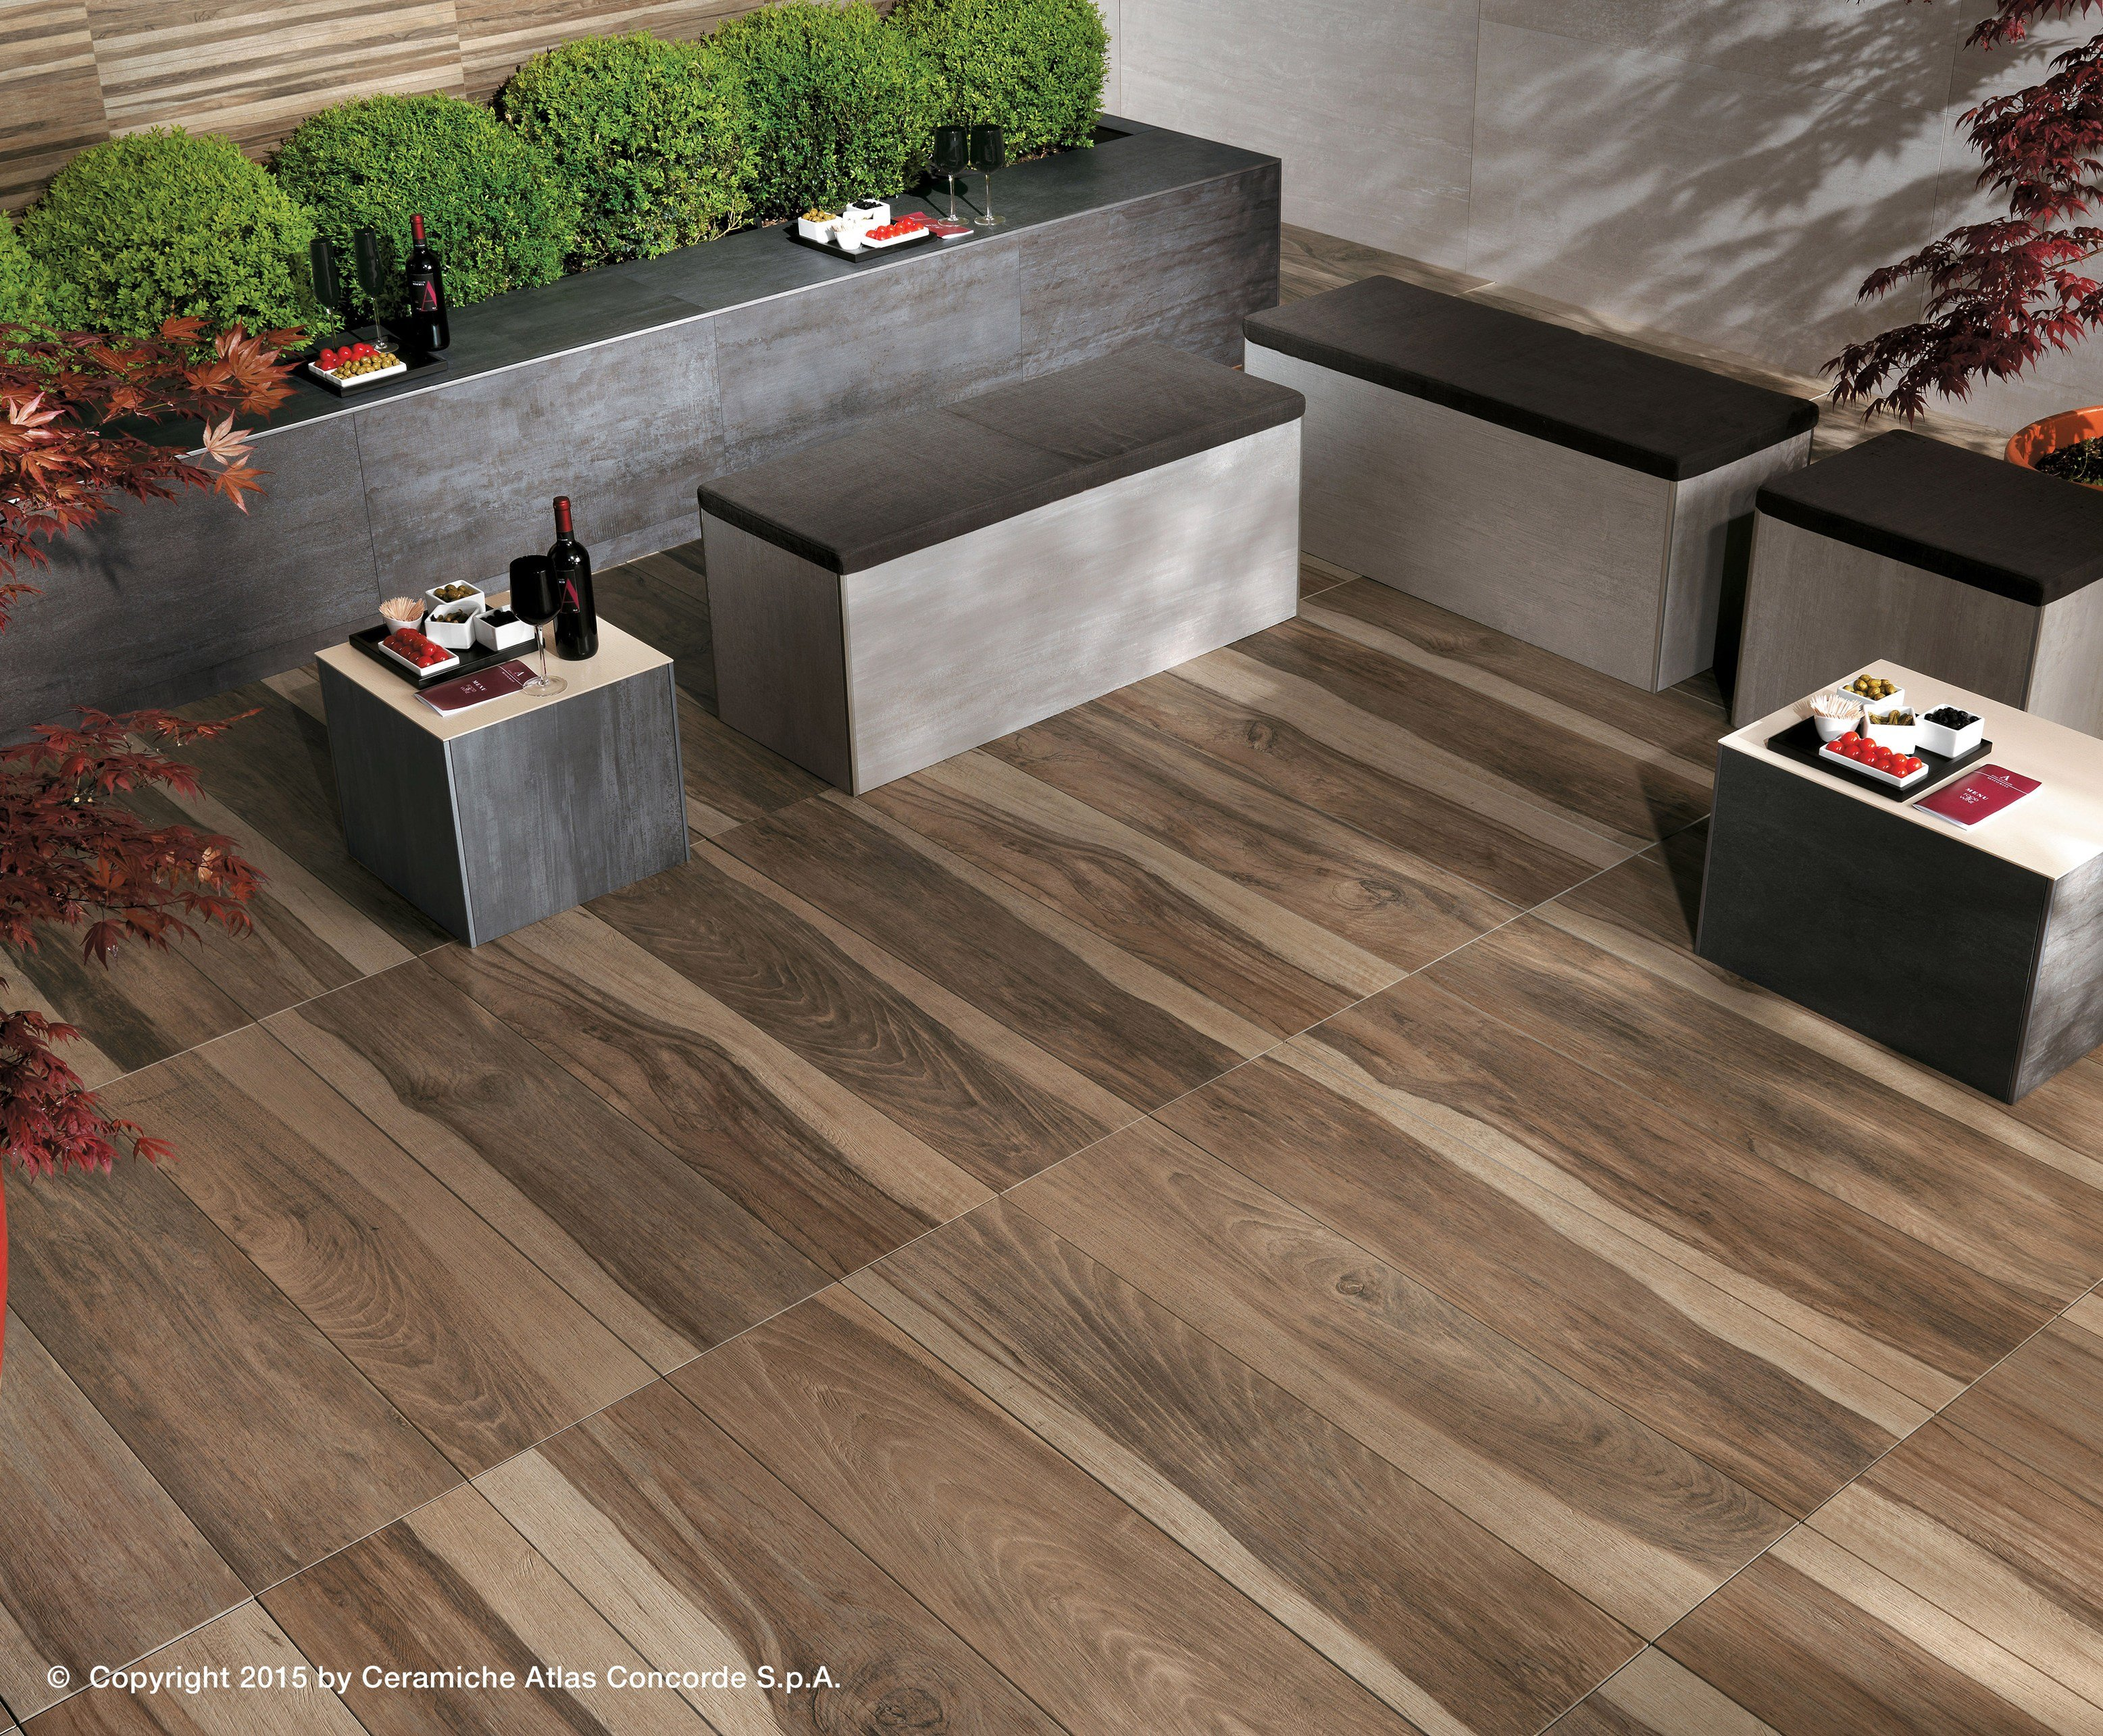 Porcelain stoneware decking ETIC PRO - OUTDOOR PAVING by Atlas Concorde